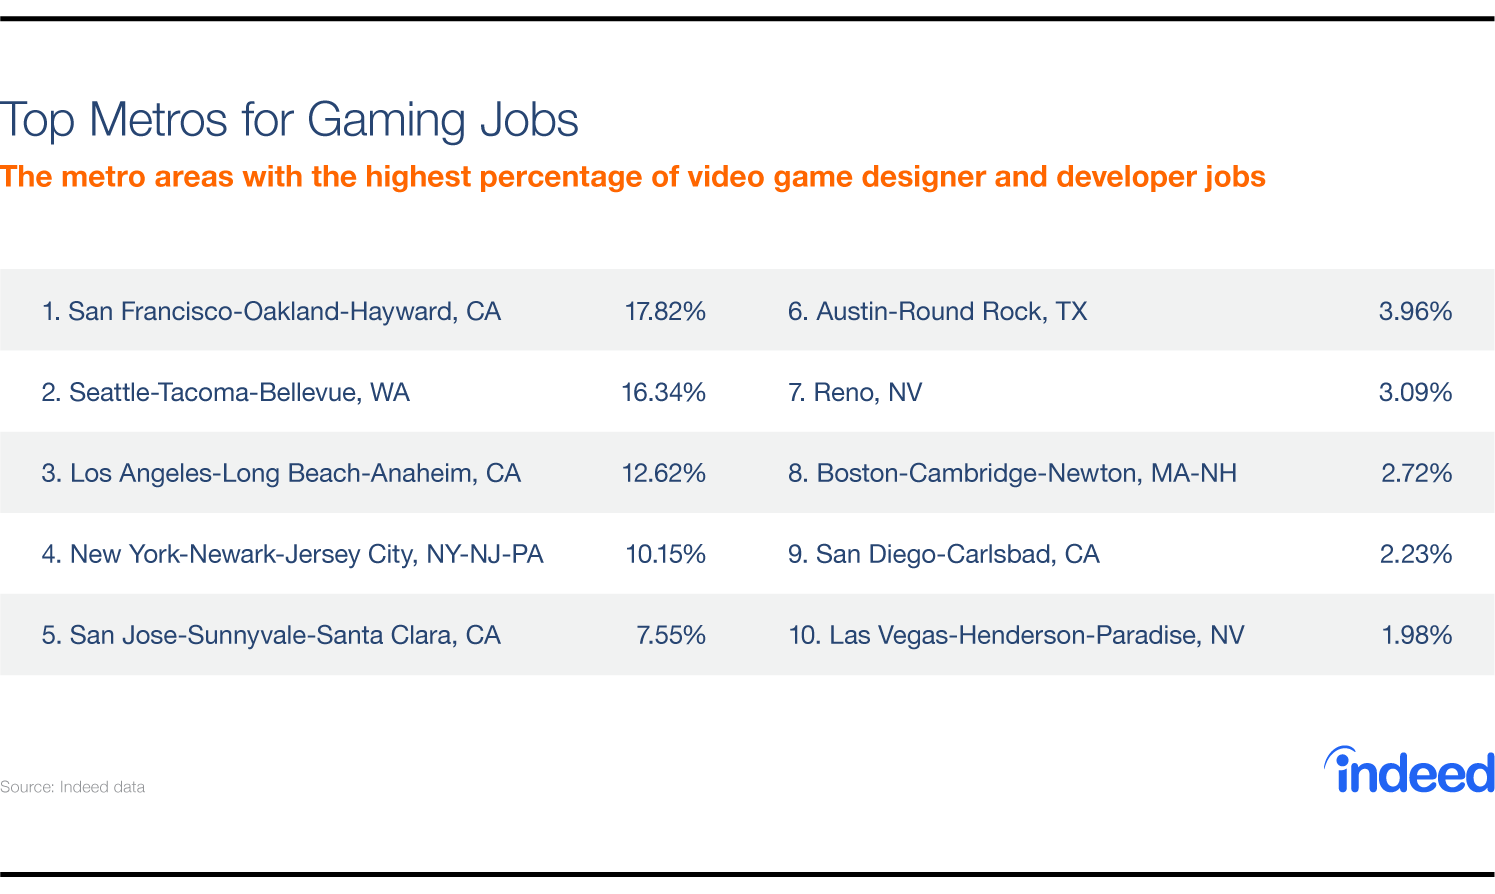 Table featuring the top metros for gaming jobs.